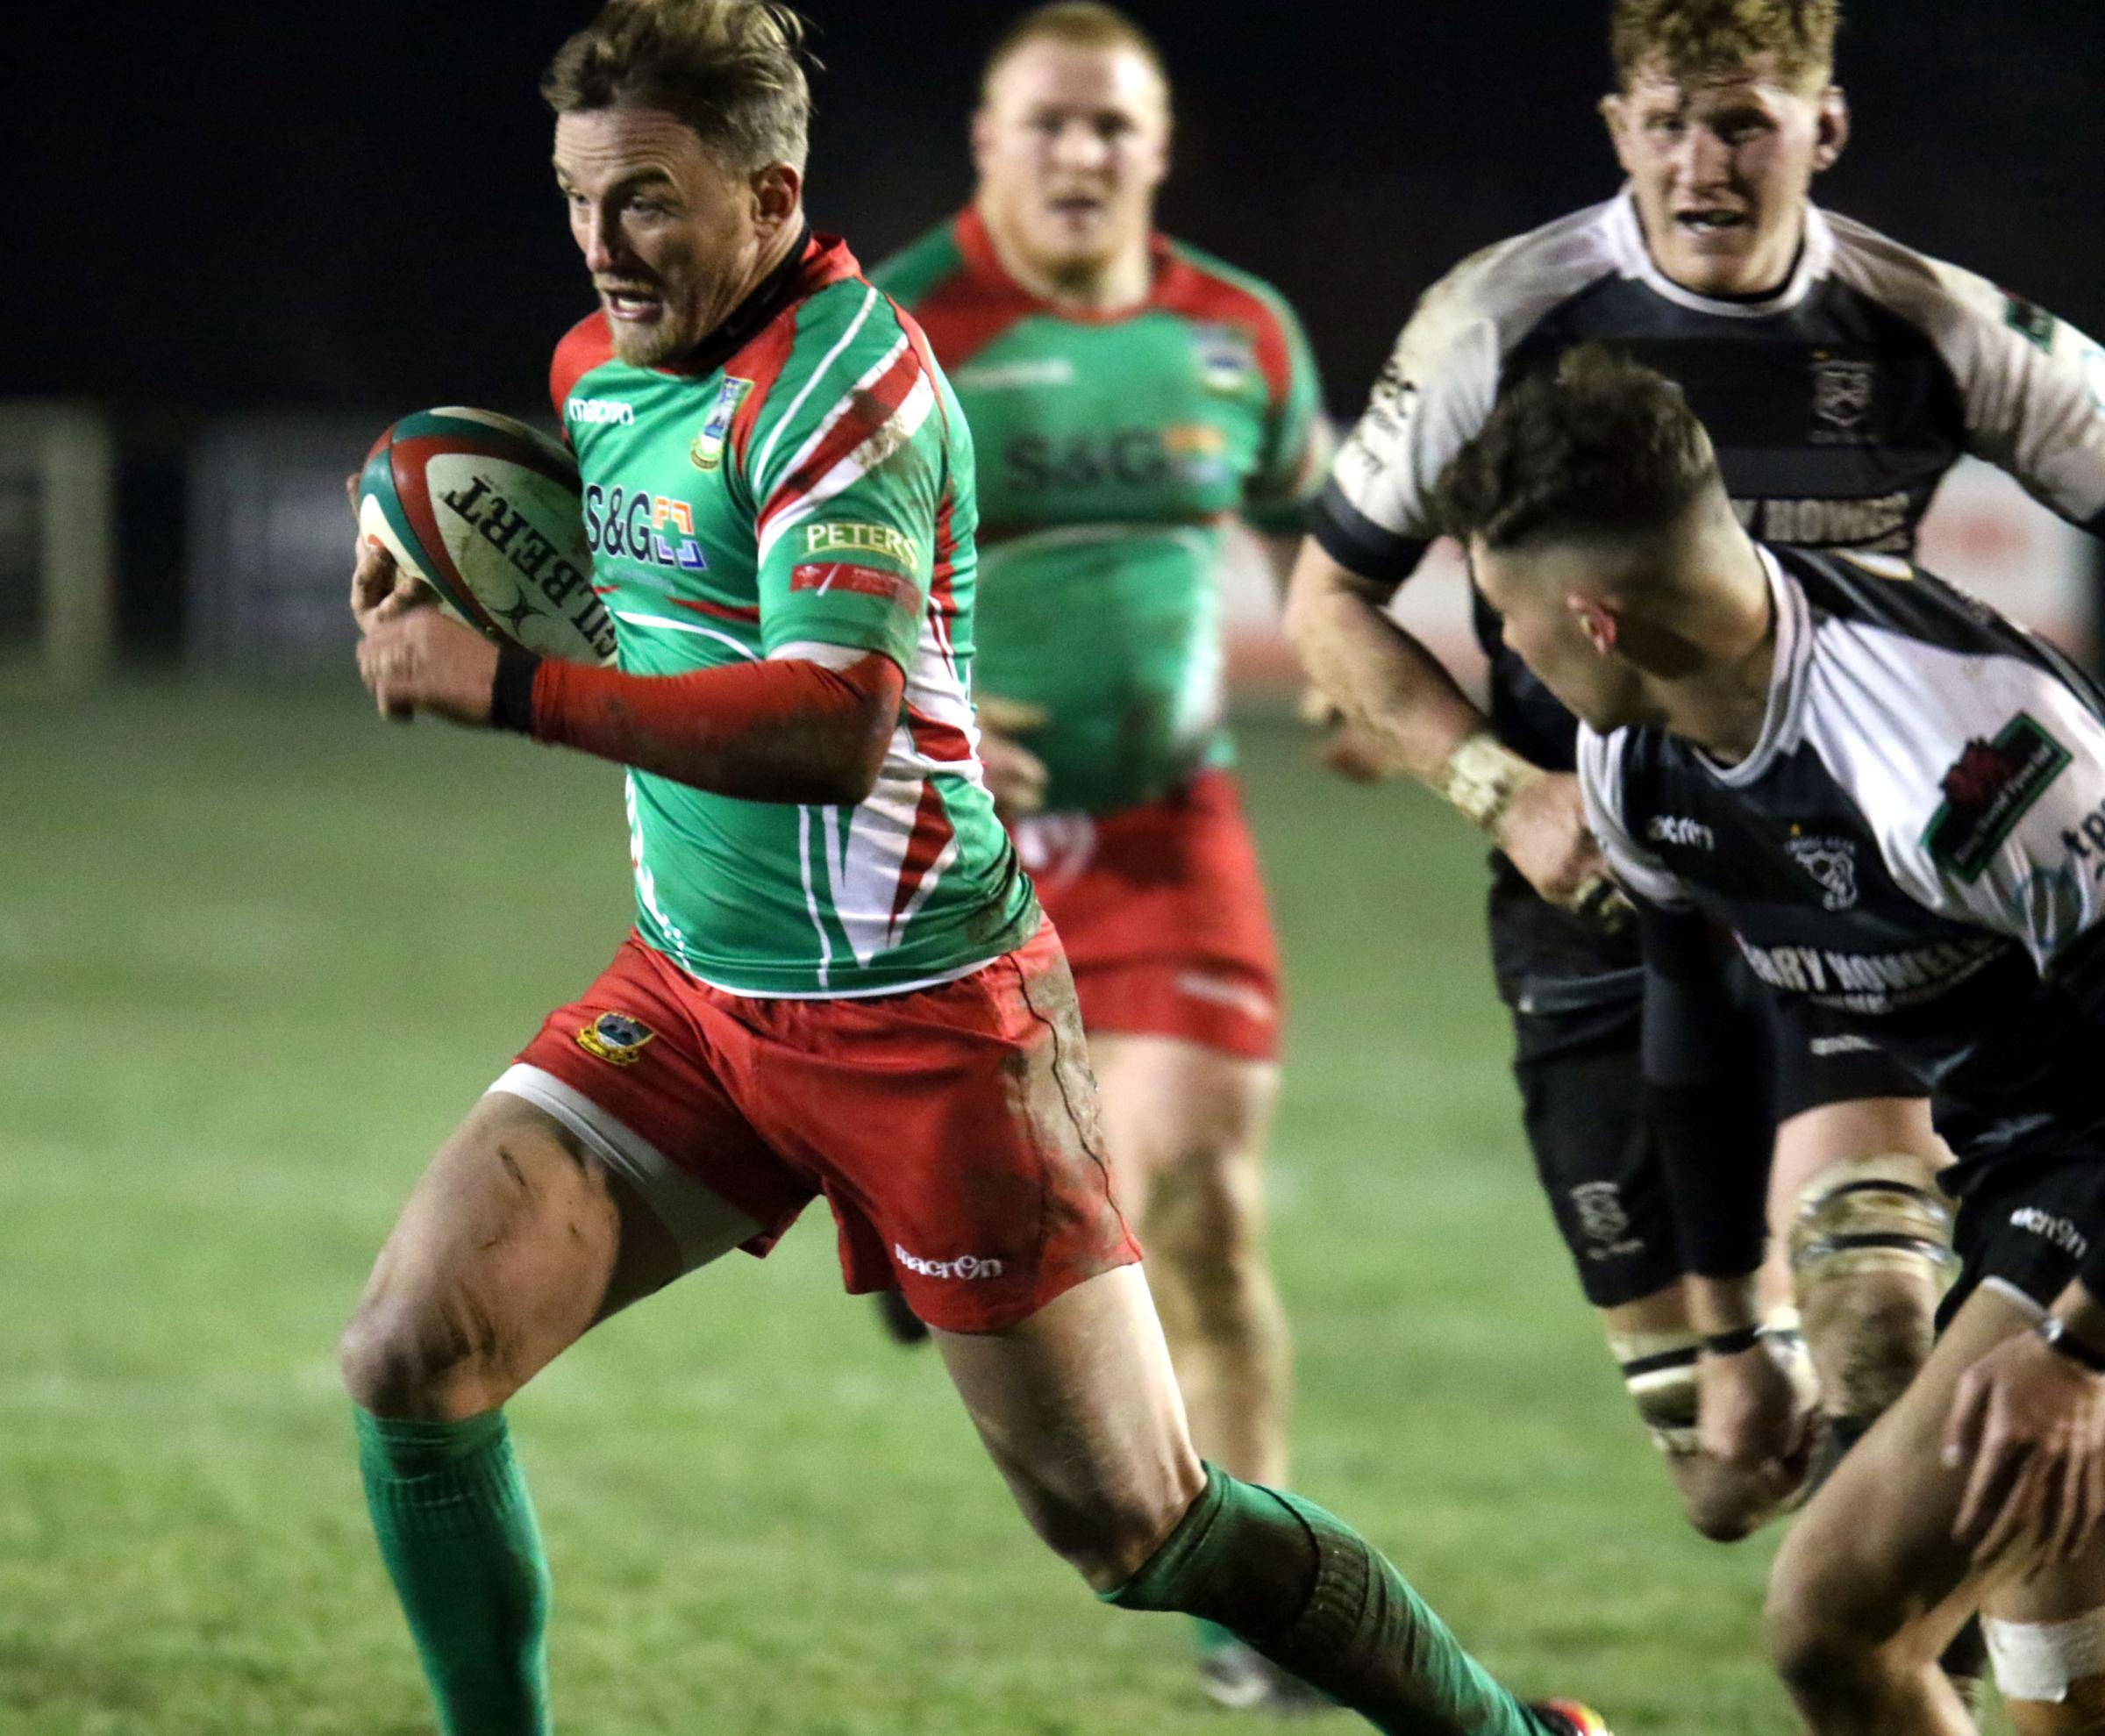 ON THE ATTACK: Bedwas' Aaron Bramwell (Picture: IAN LOVELL)